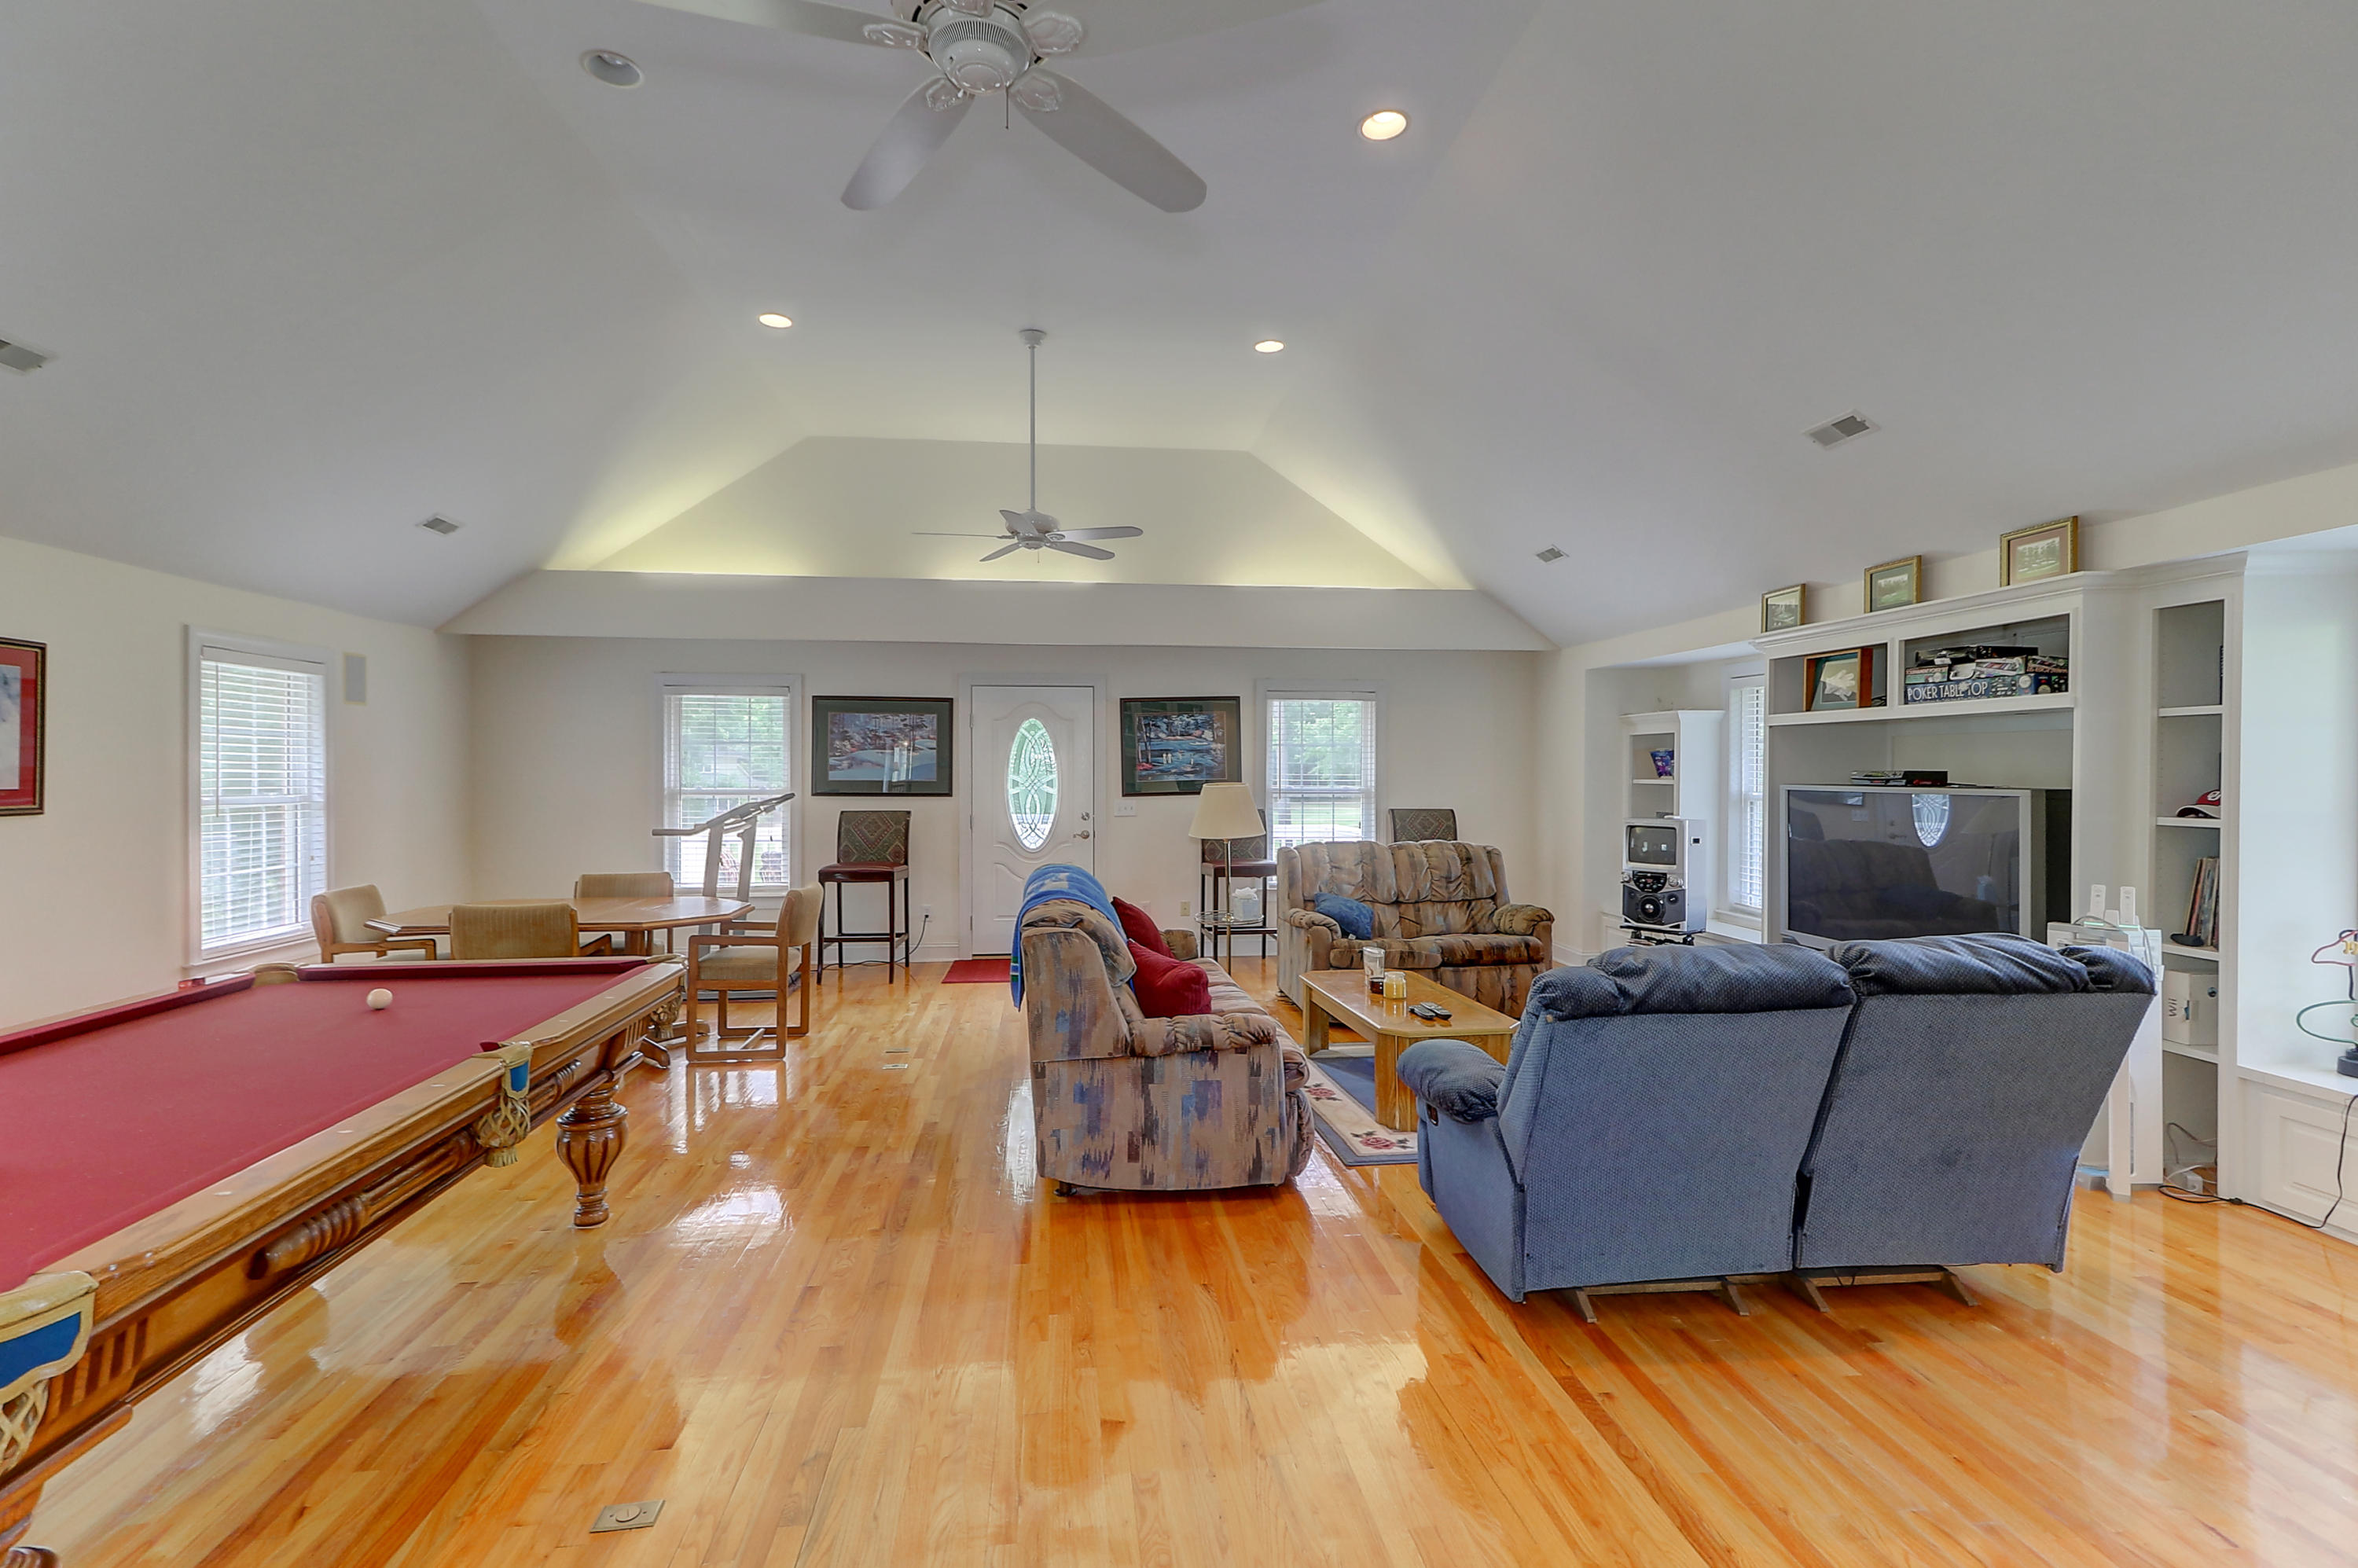 Coosaw Creek Country Club Homes For Sale - 8700 Fairway Woods, North Charleston, SC - 69